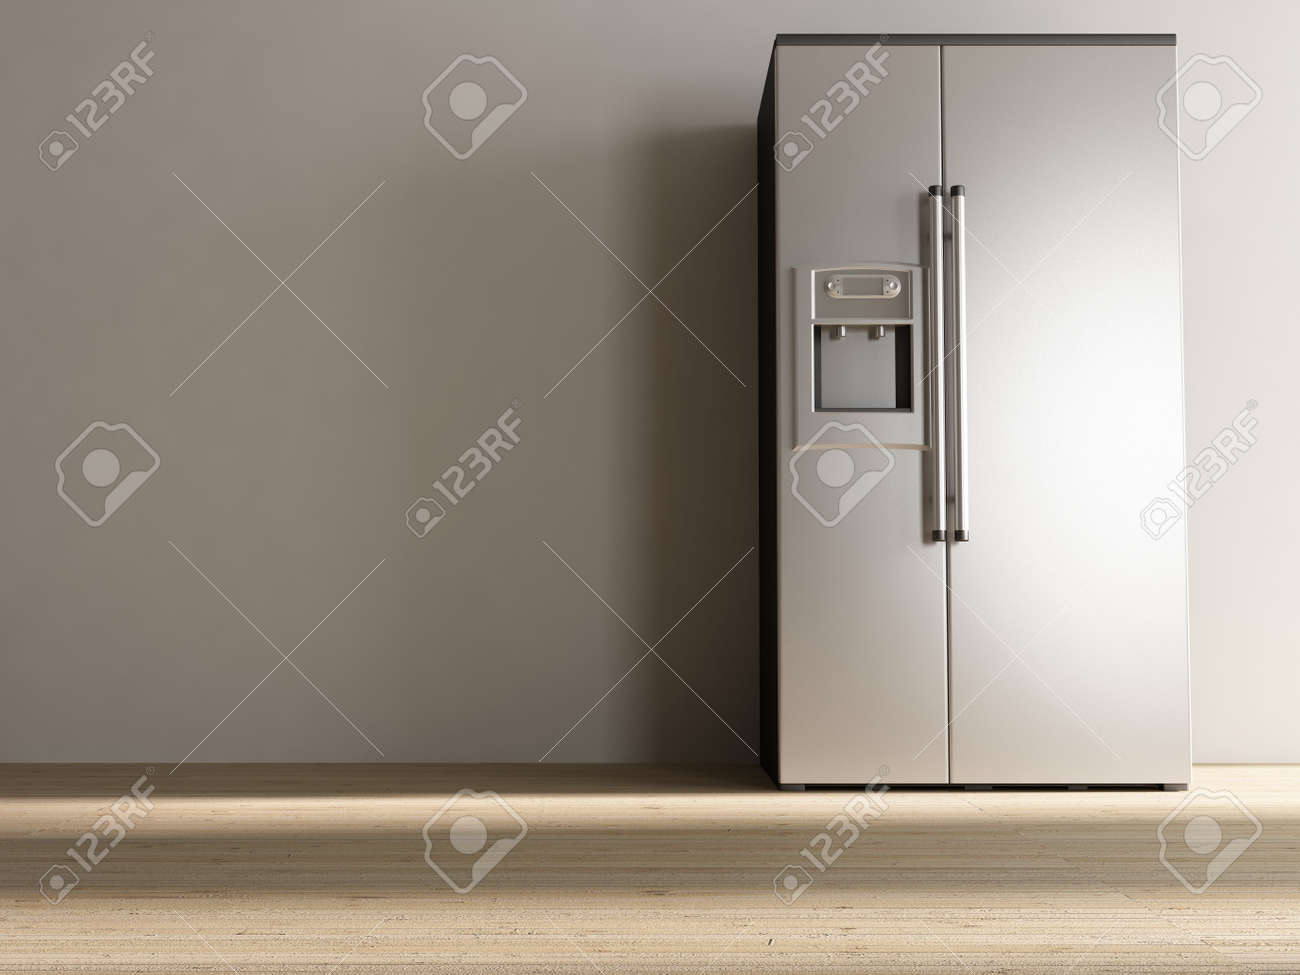 Blank Kitchen Wall Large Refrigerator To Face A Blank White Wall Stock Photo Picture